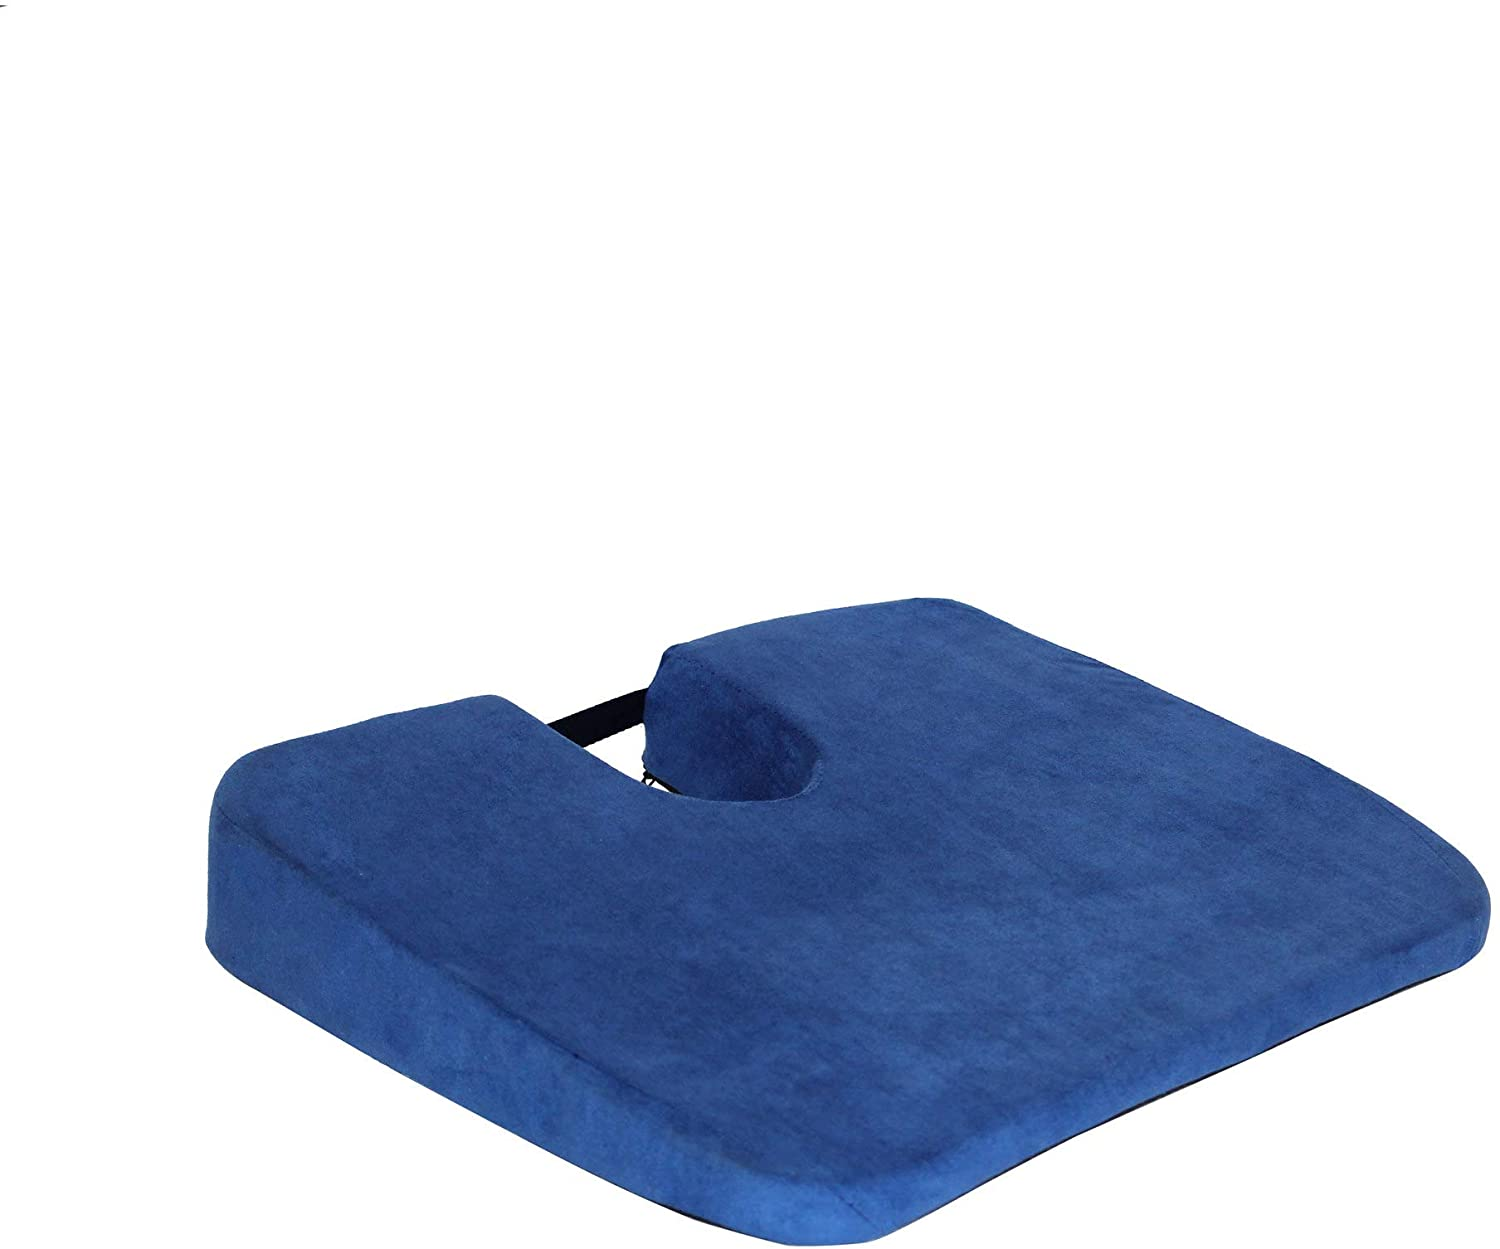 Q QUALITY BRAND COMPANY McCartys Q-KOMFORTKUSH-BLU 17 in. Wide Wedge Sacro-Ease Bottom Seat Cushion Support 16x17x3 in. Blue Color